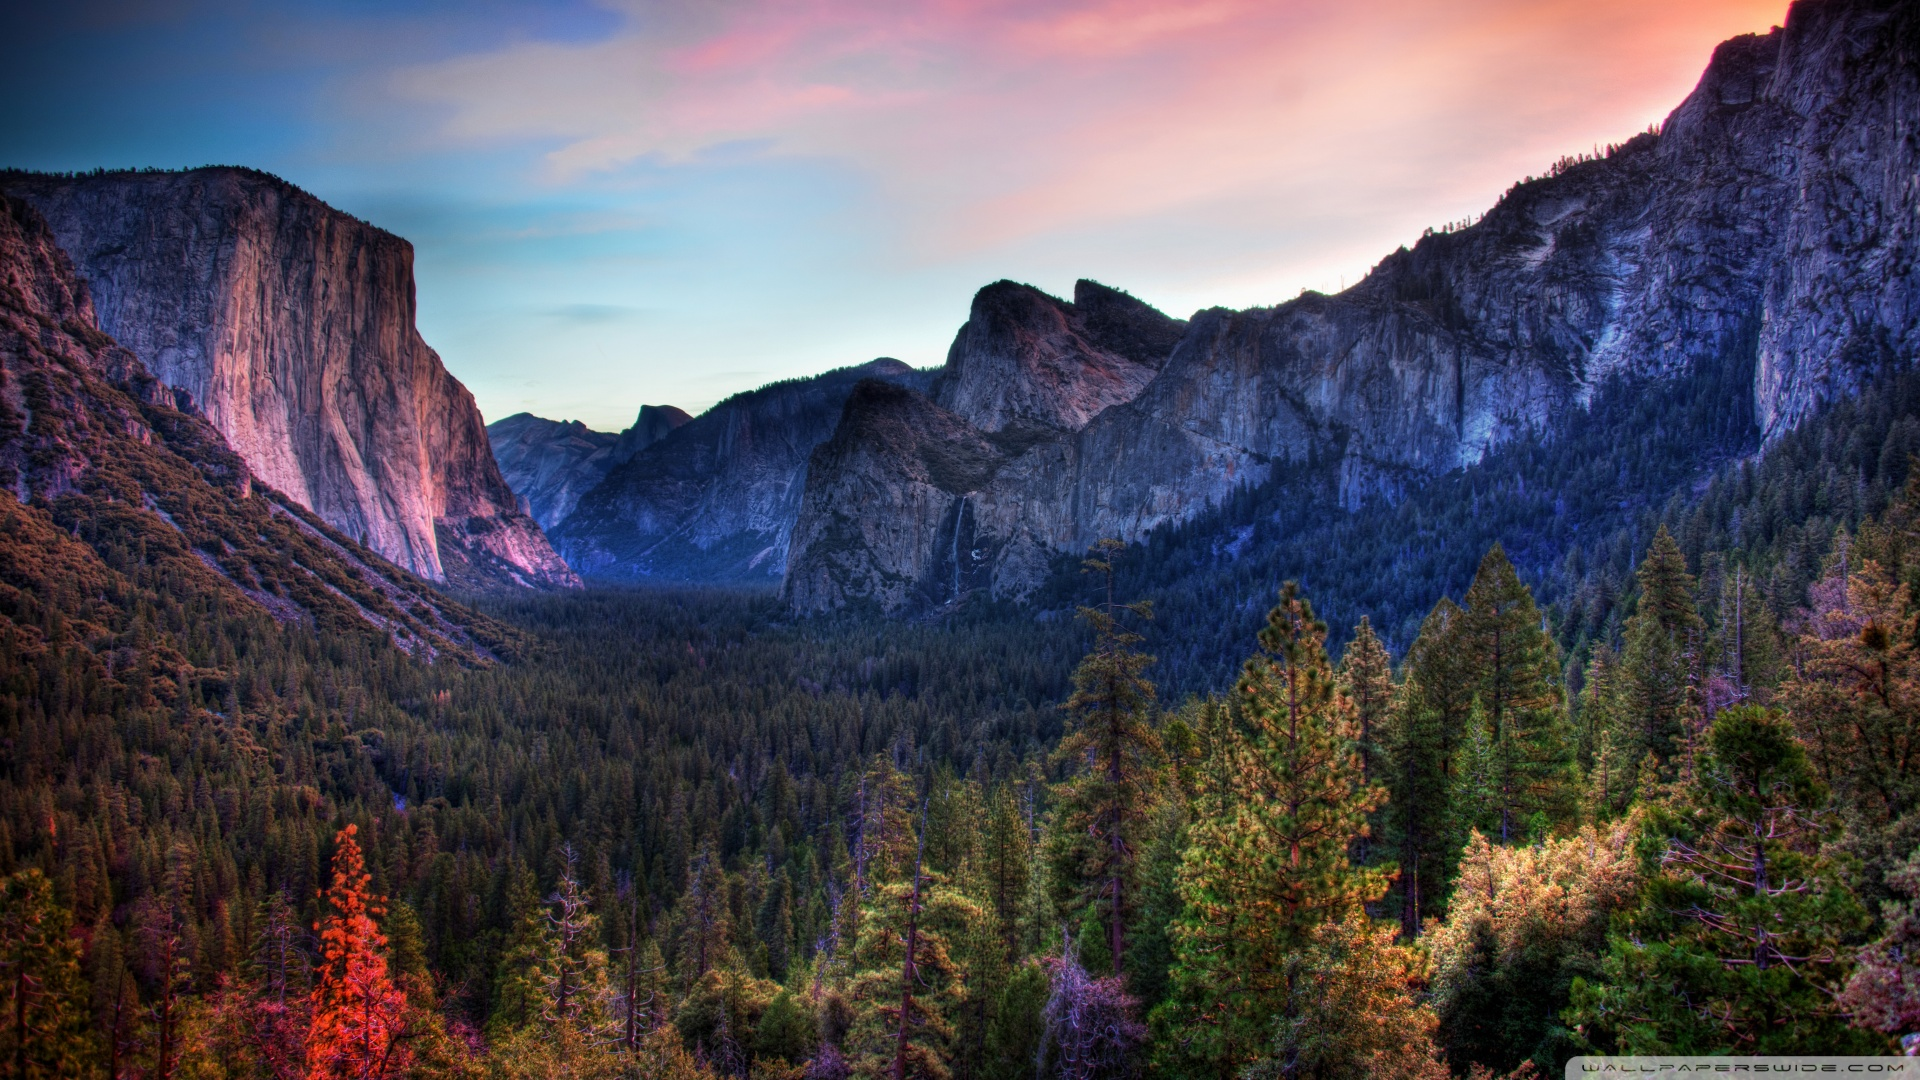 Apples OS X naming convention makes choosing Mac wallpapers easy if 1920x1080